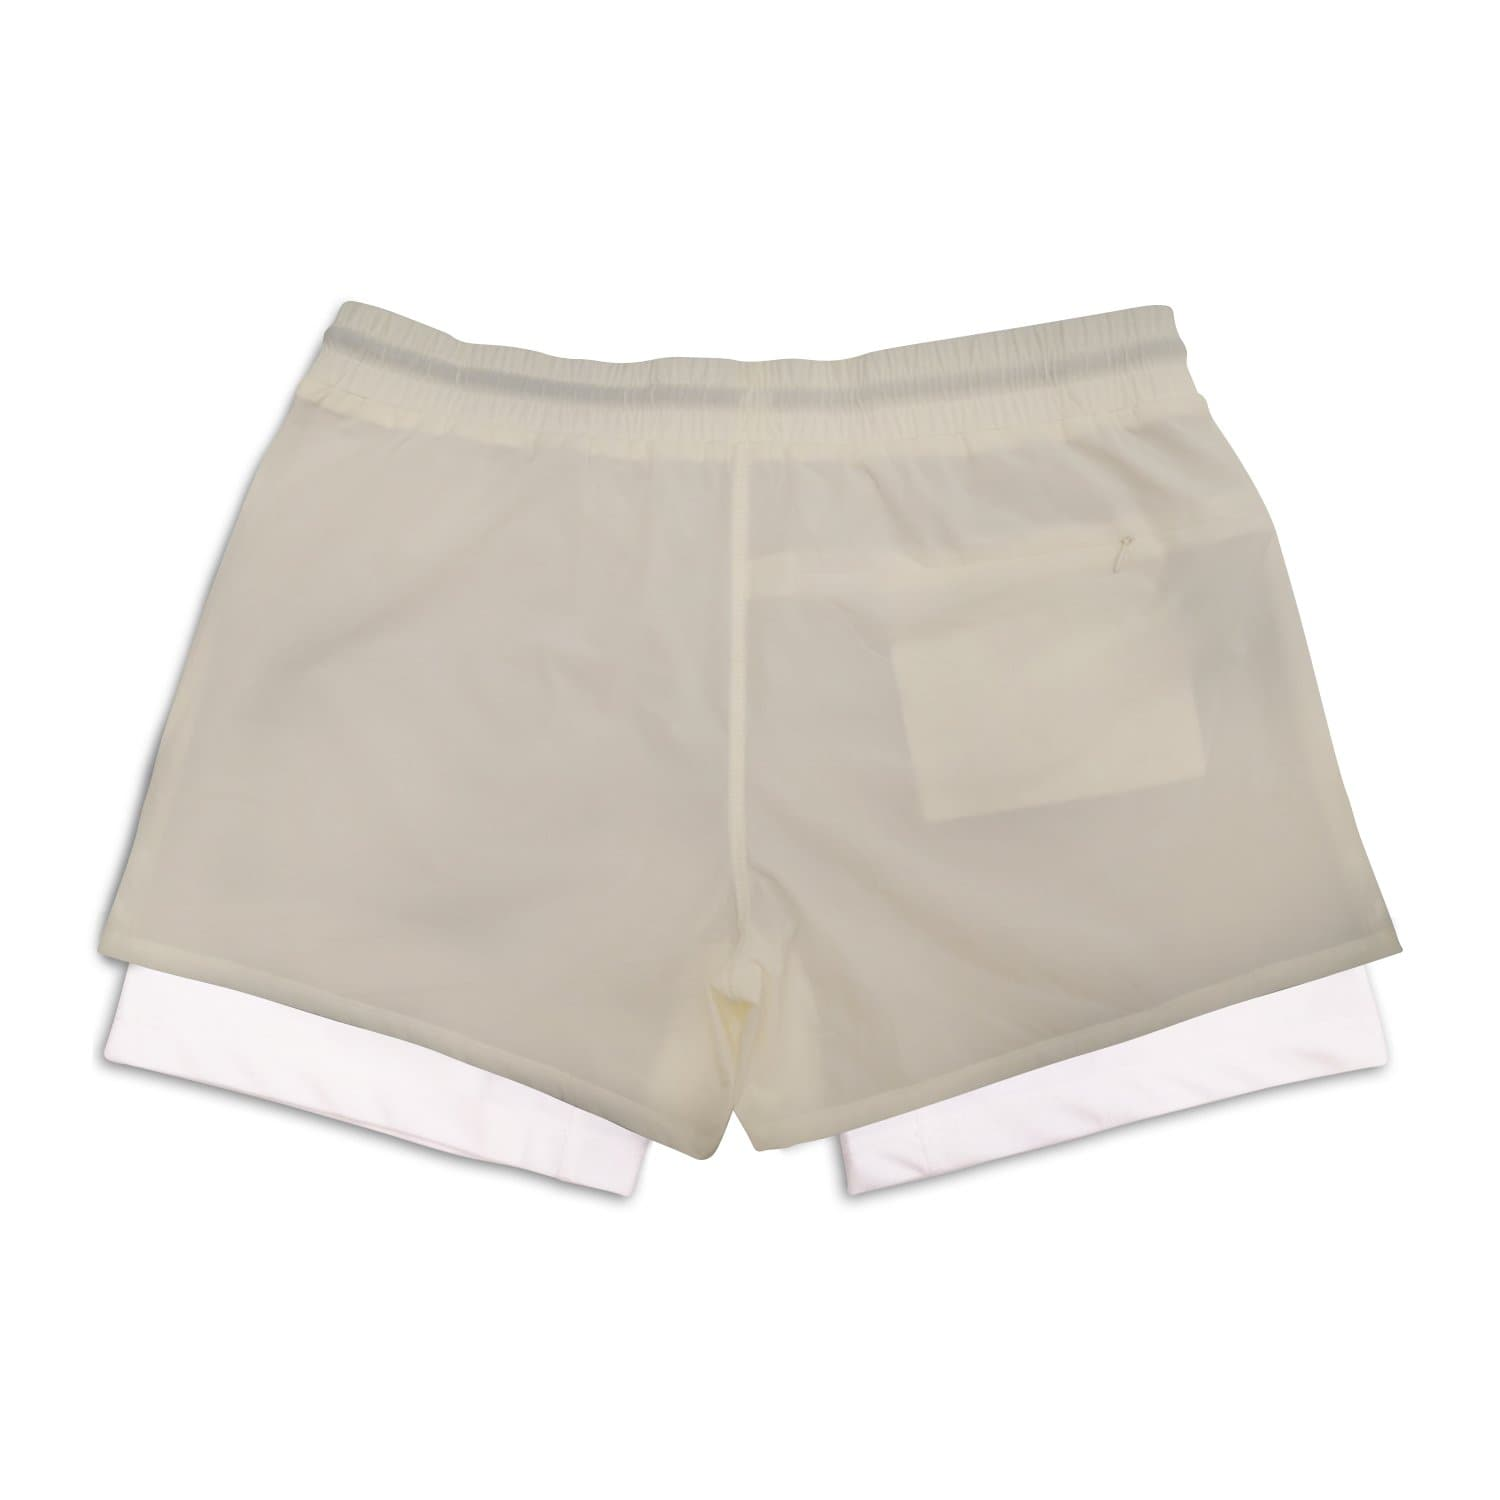 "Men's Active Liner Shorts 5"" - Cream"